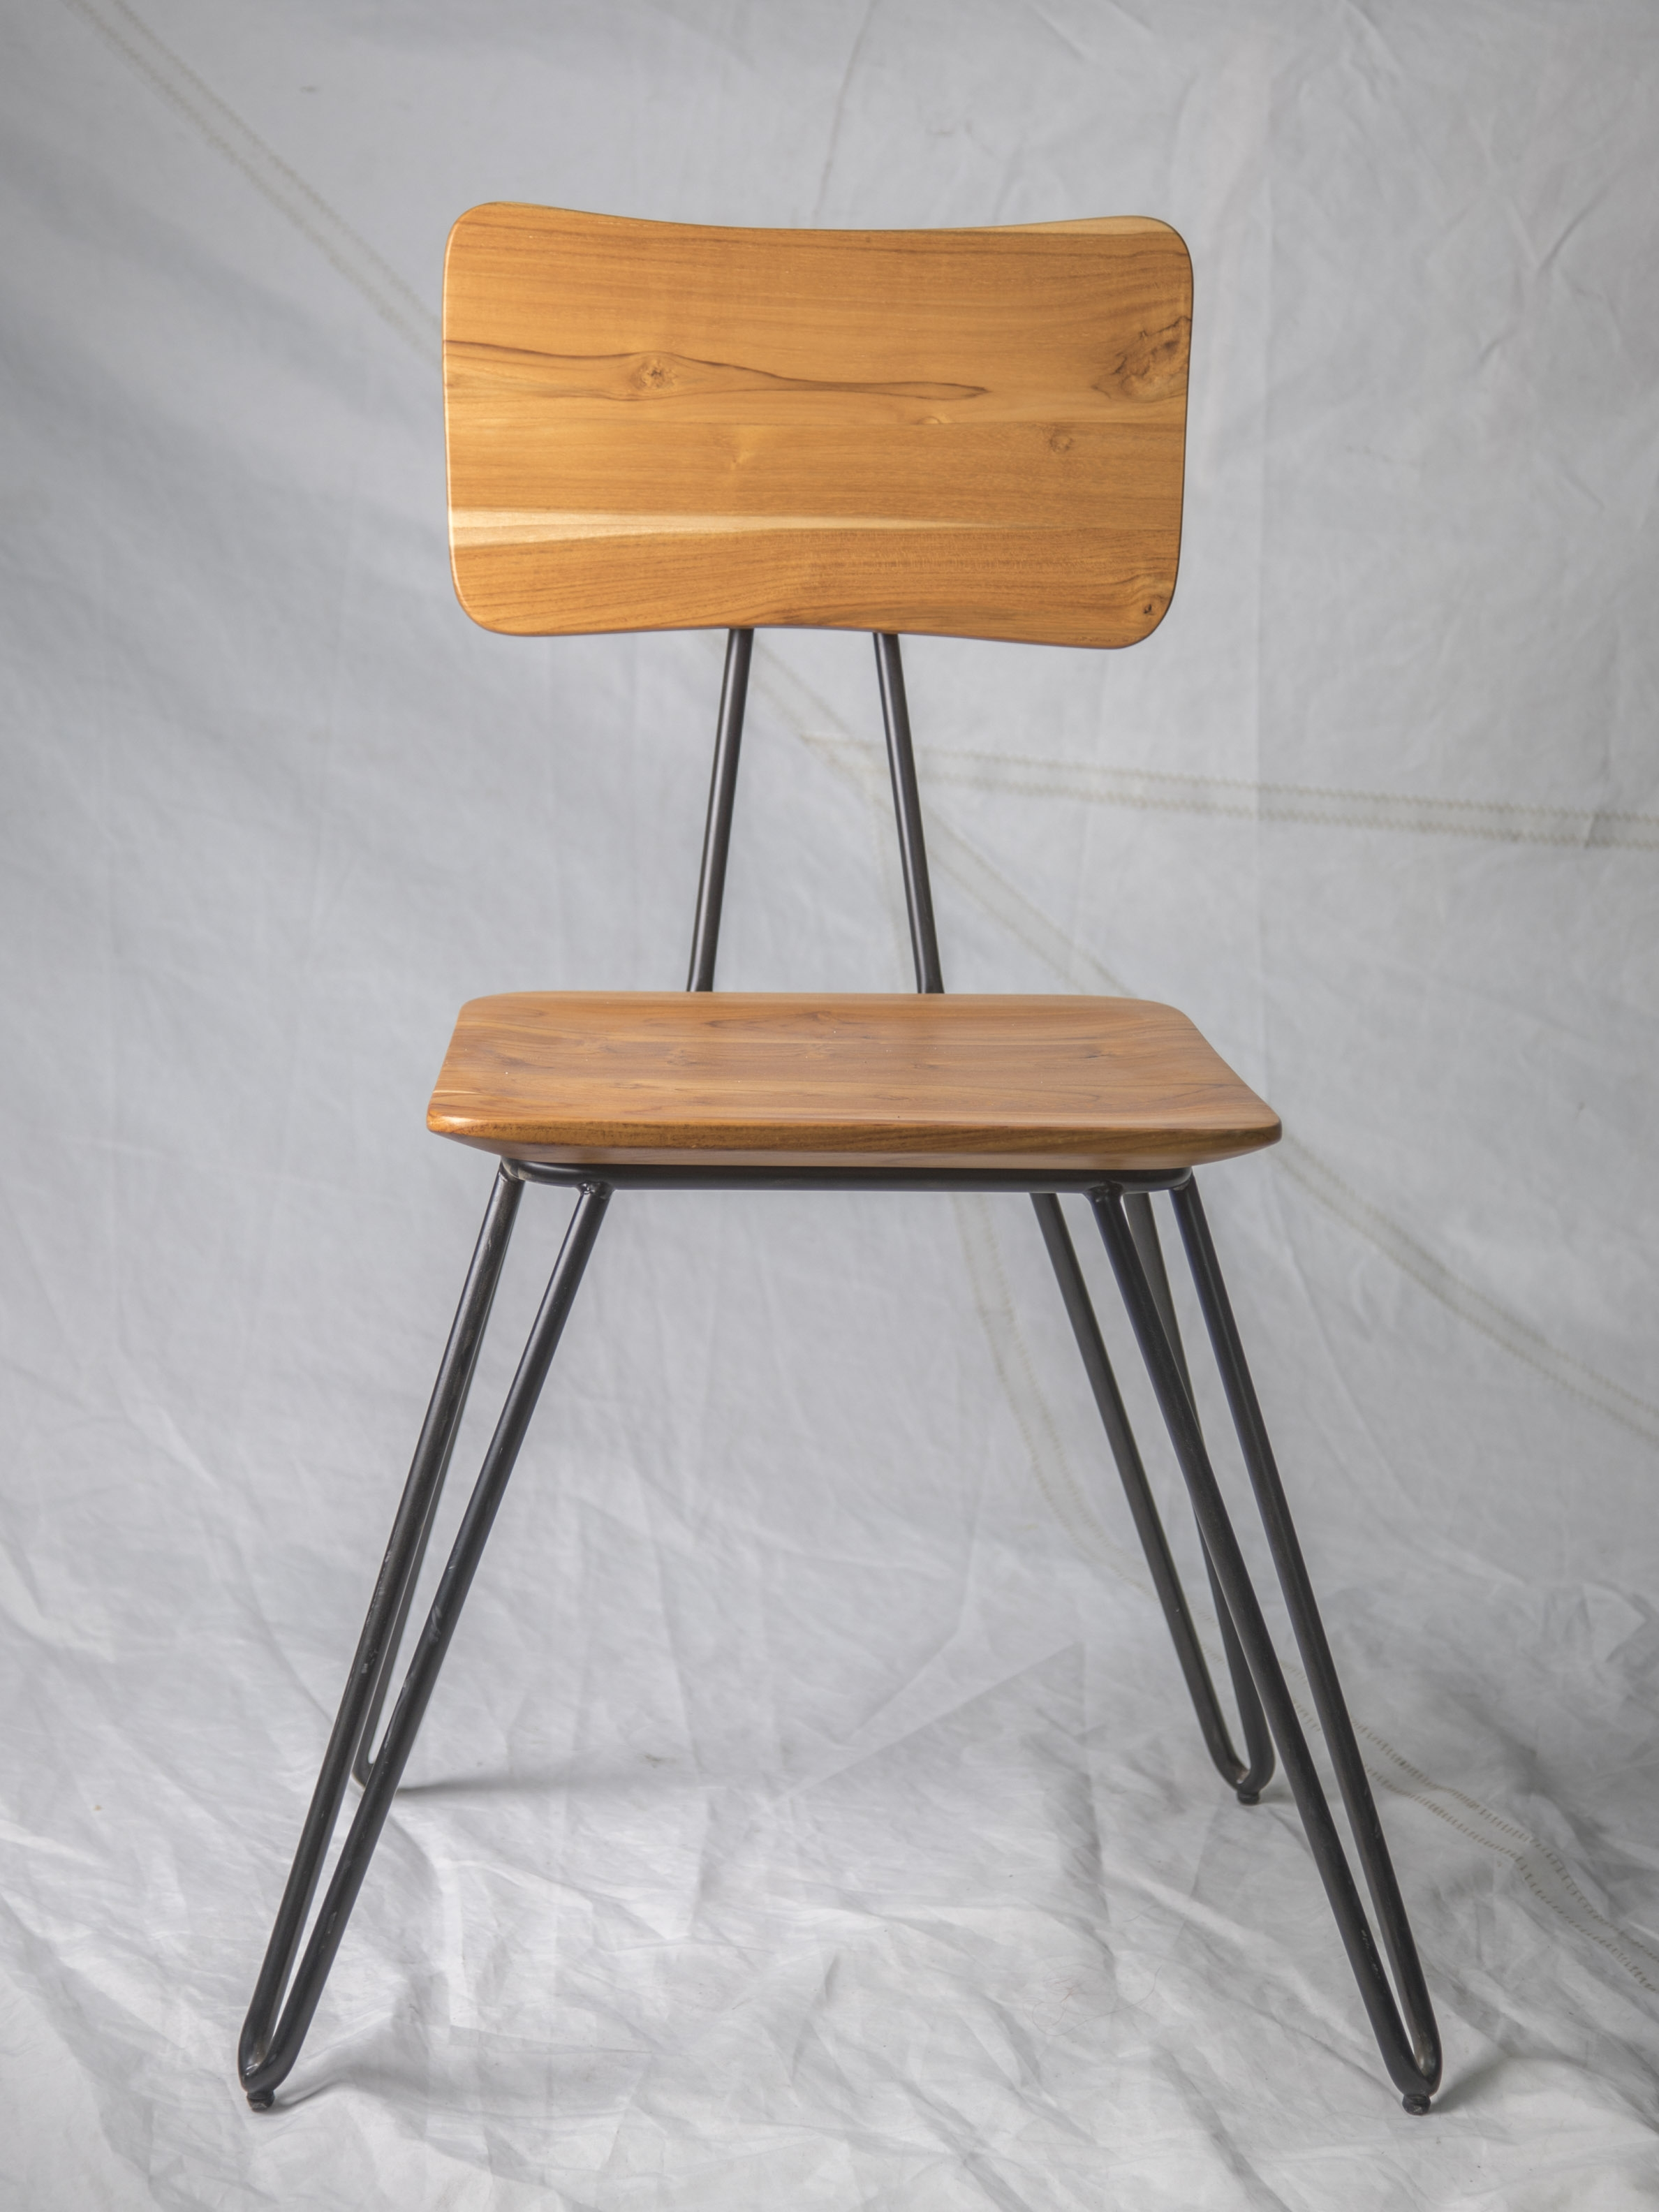 "CH013  Sustainable wood chair 34"" H x 16"" W x 20"" D  $125/week"